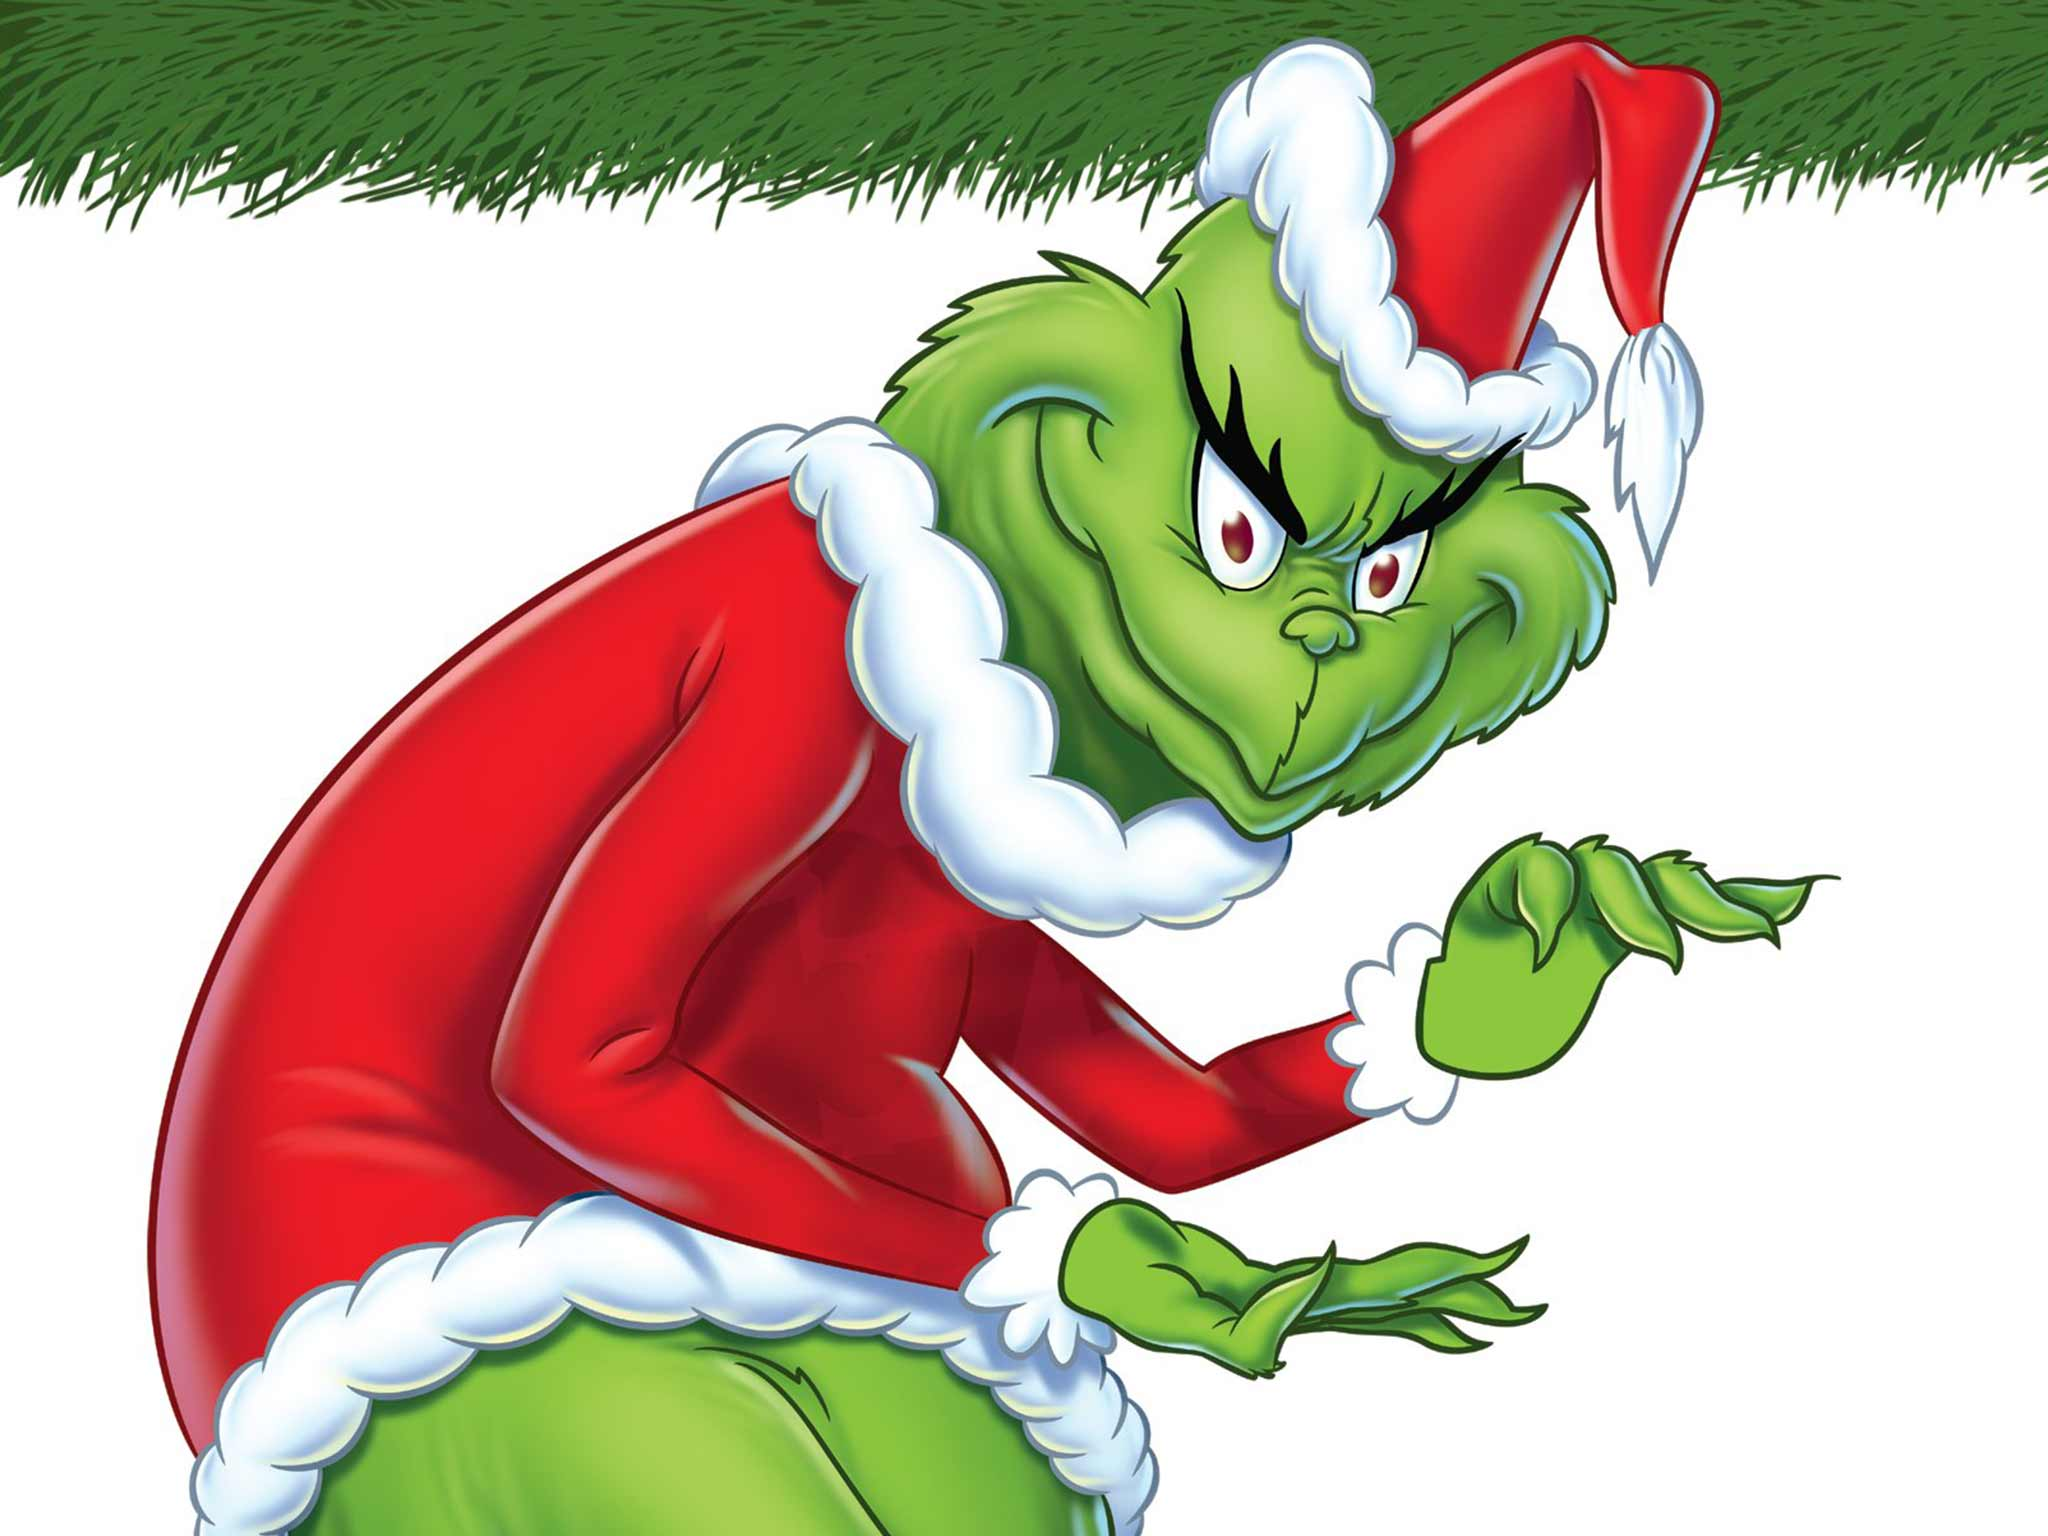 Dr Seuss How The Grinch Stole Christmas.Dr Seuss How The Grinch Stole Christmas Tbs Com